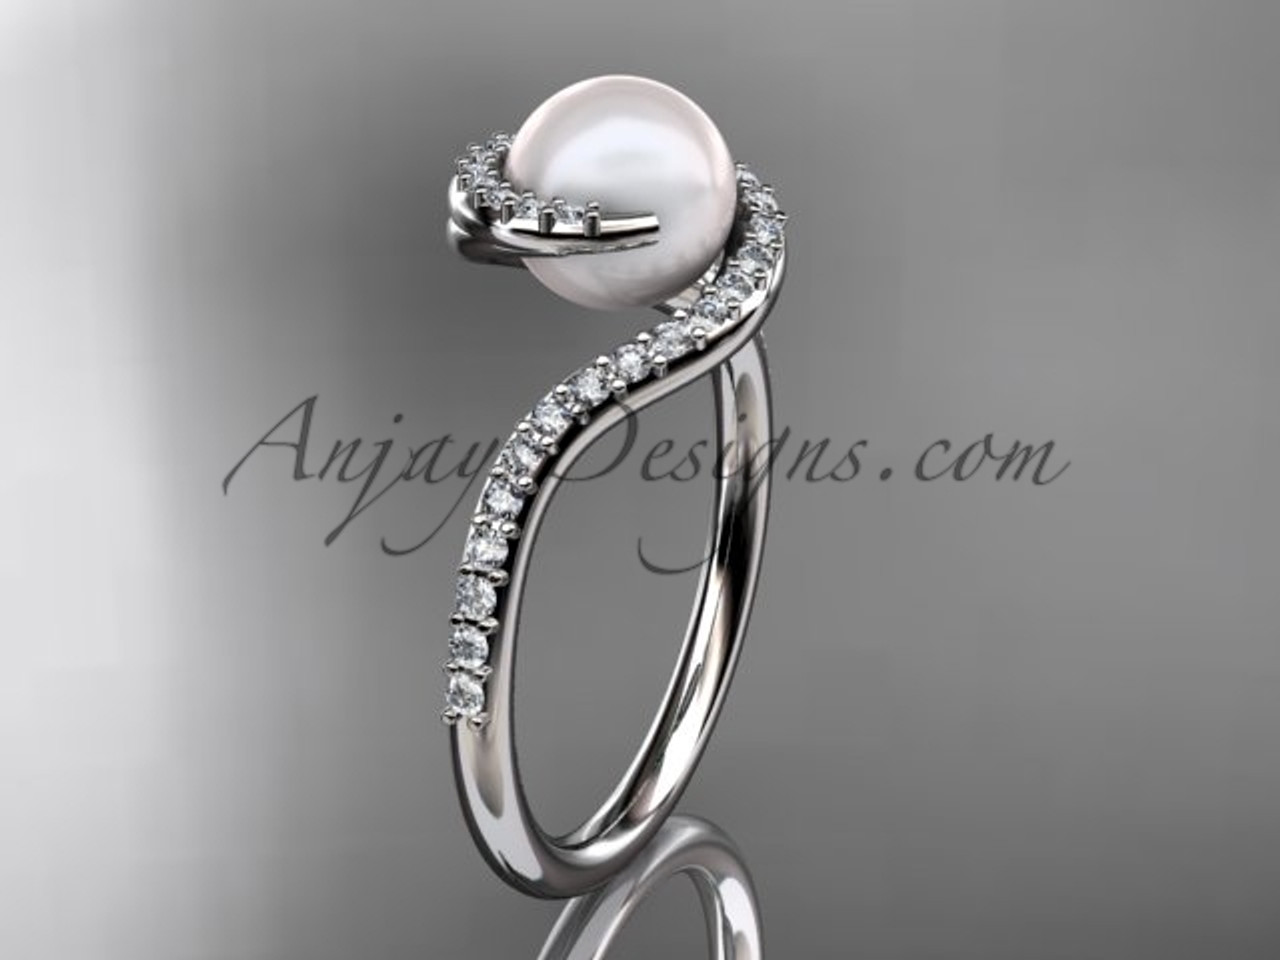 Pearl Proposal Ring White Gold Diamond Marriage Ring Vp8199